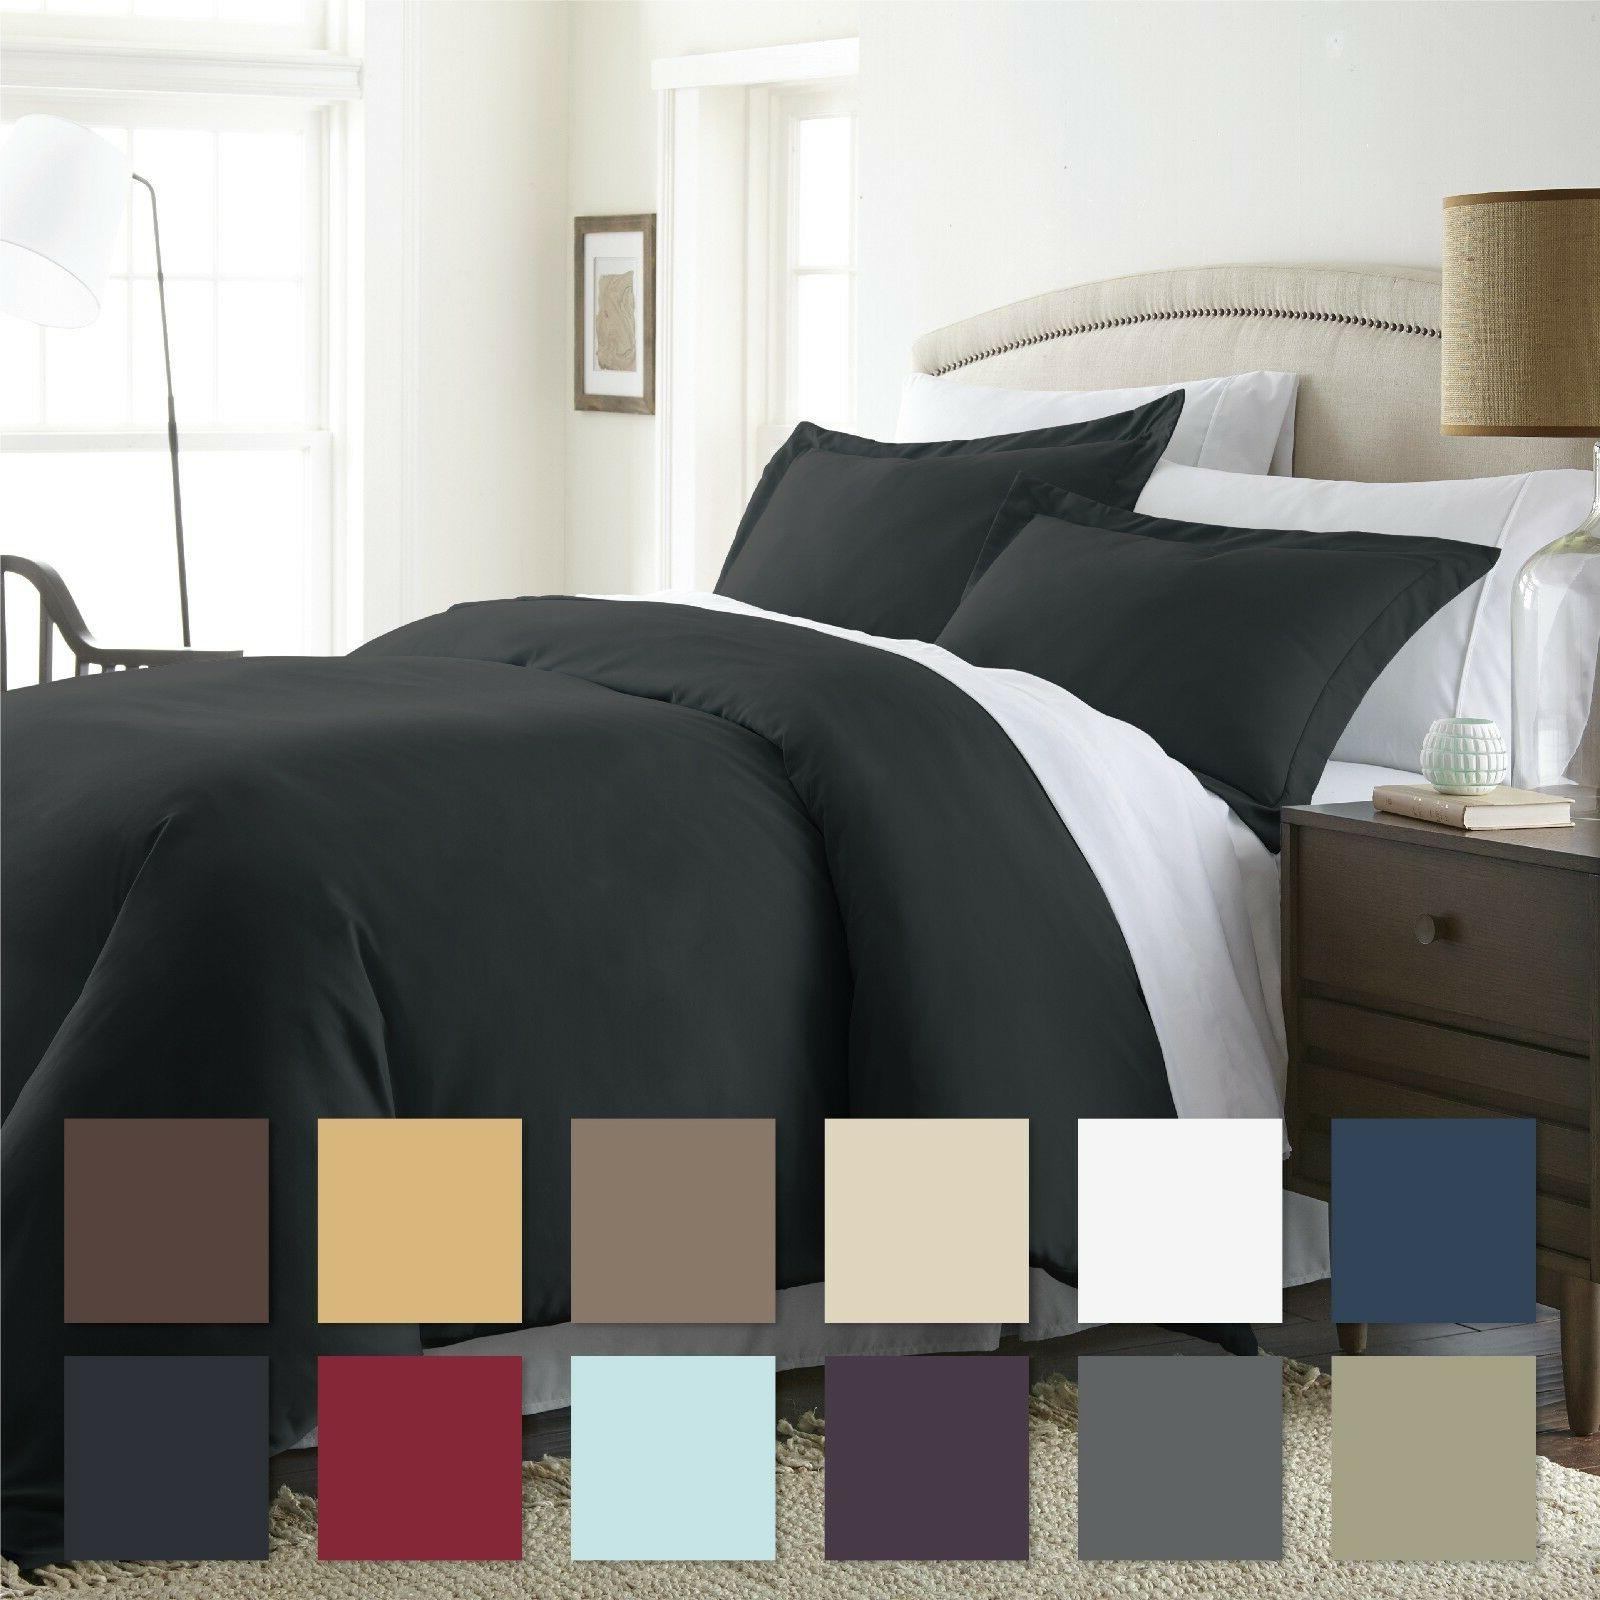 3 piece premium duvet cover set premium